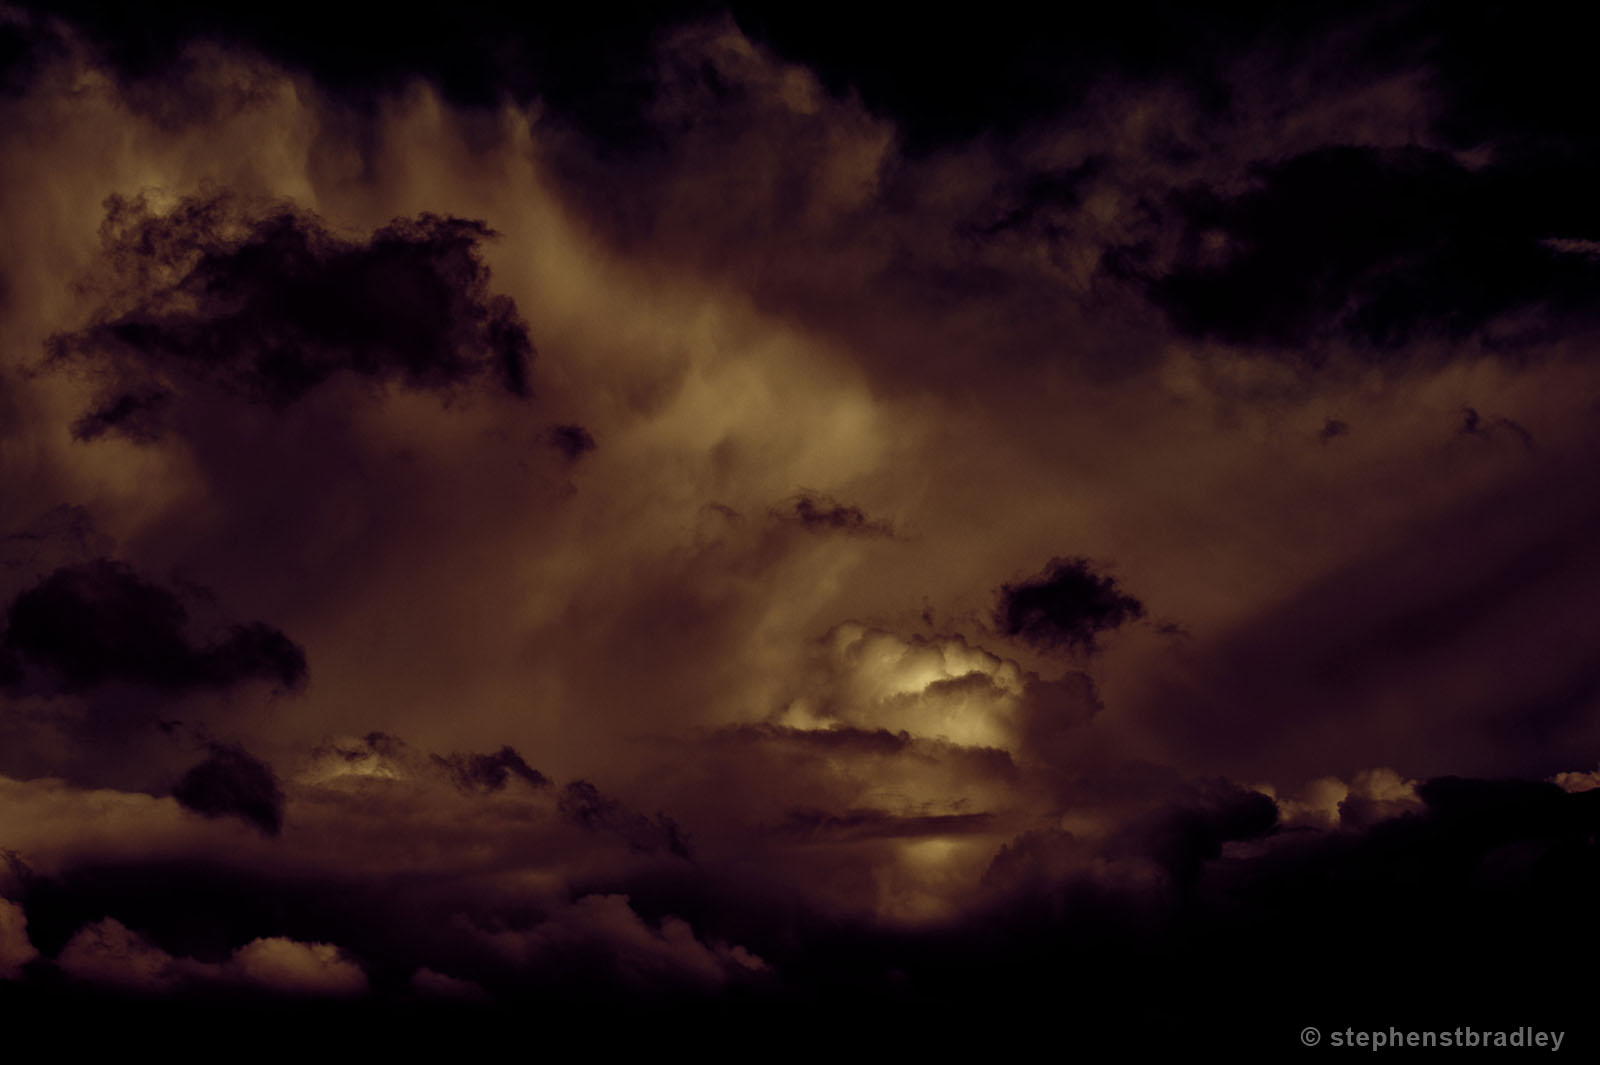 Boom - fine art photograph by Stephen S T Bradley of clouds over Newtownabbey, Northern Ireland